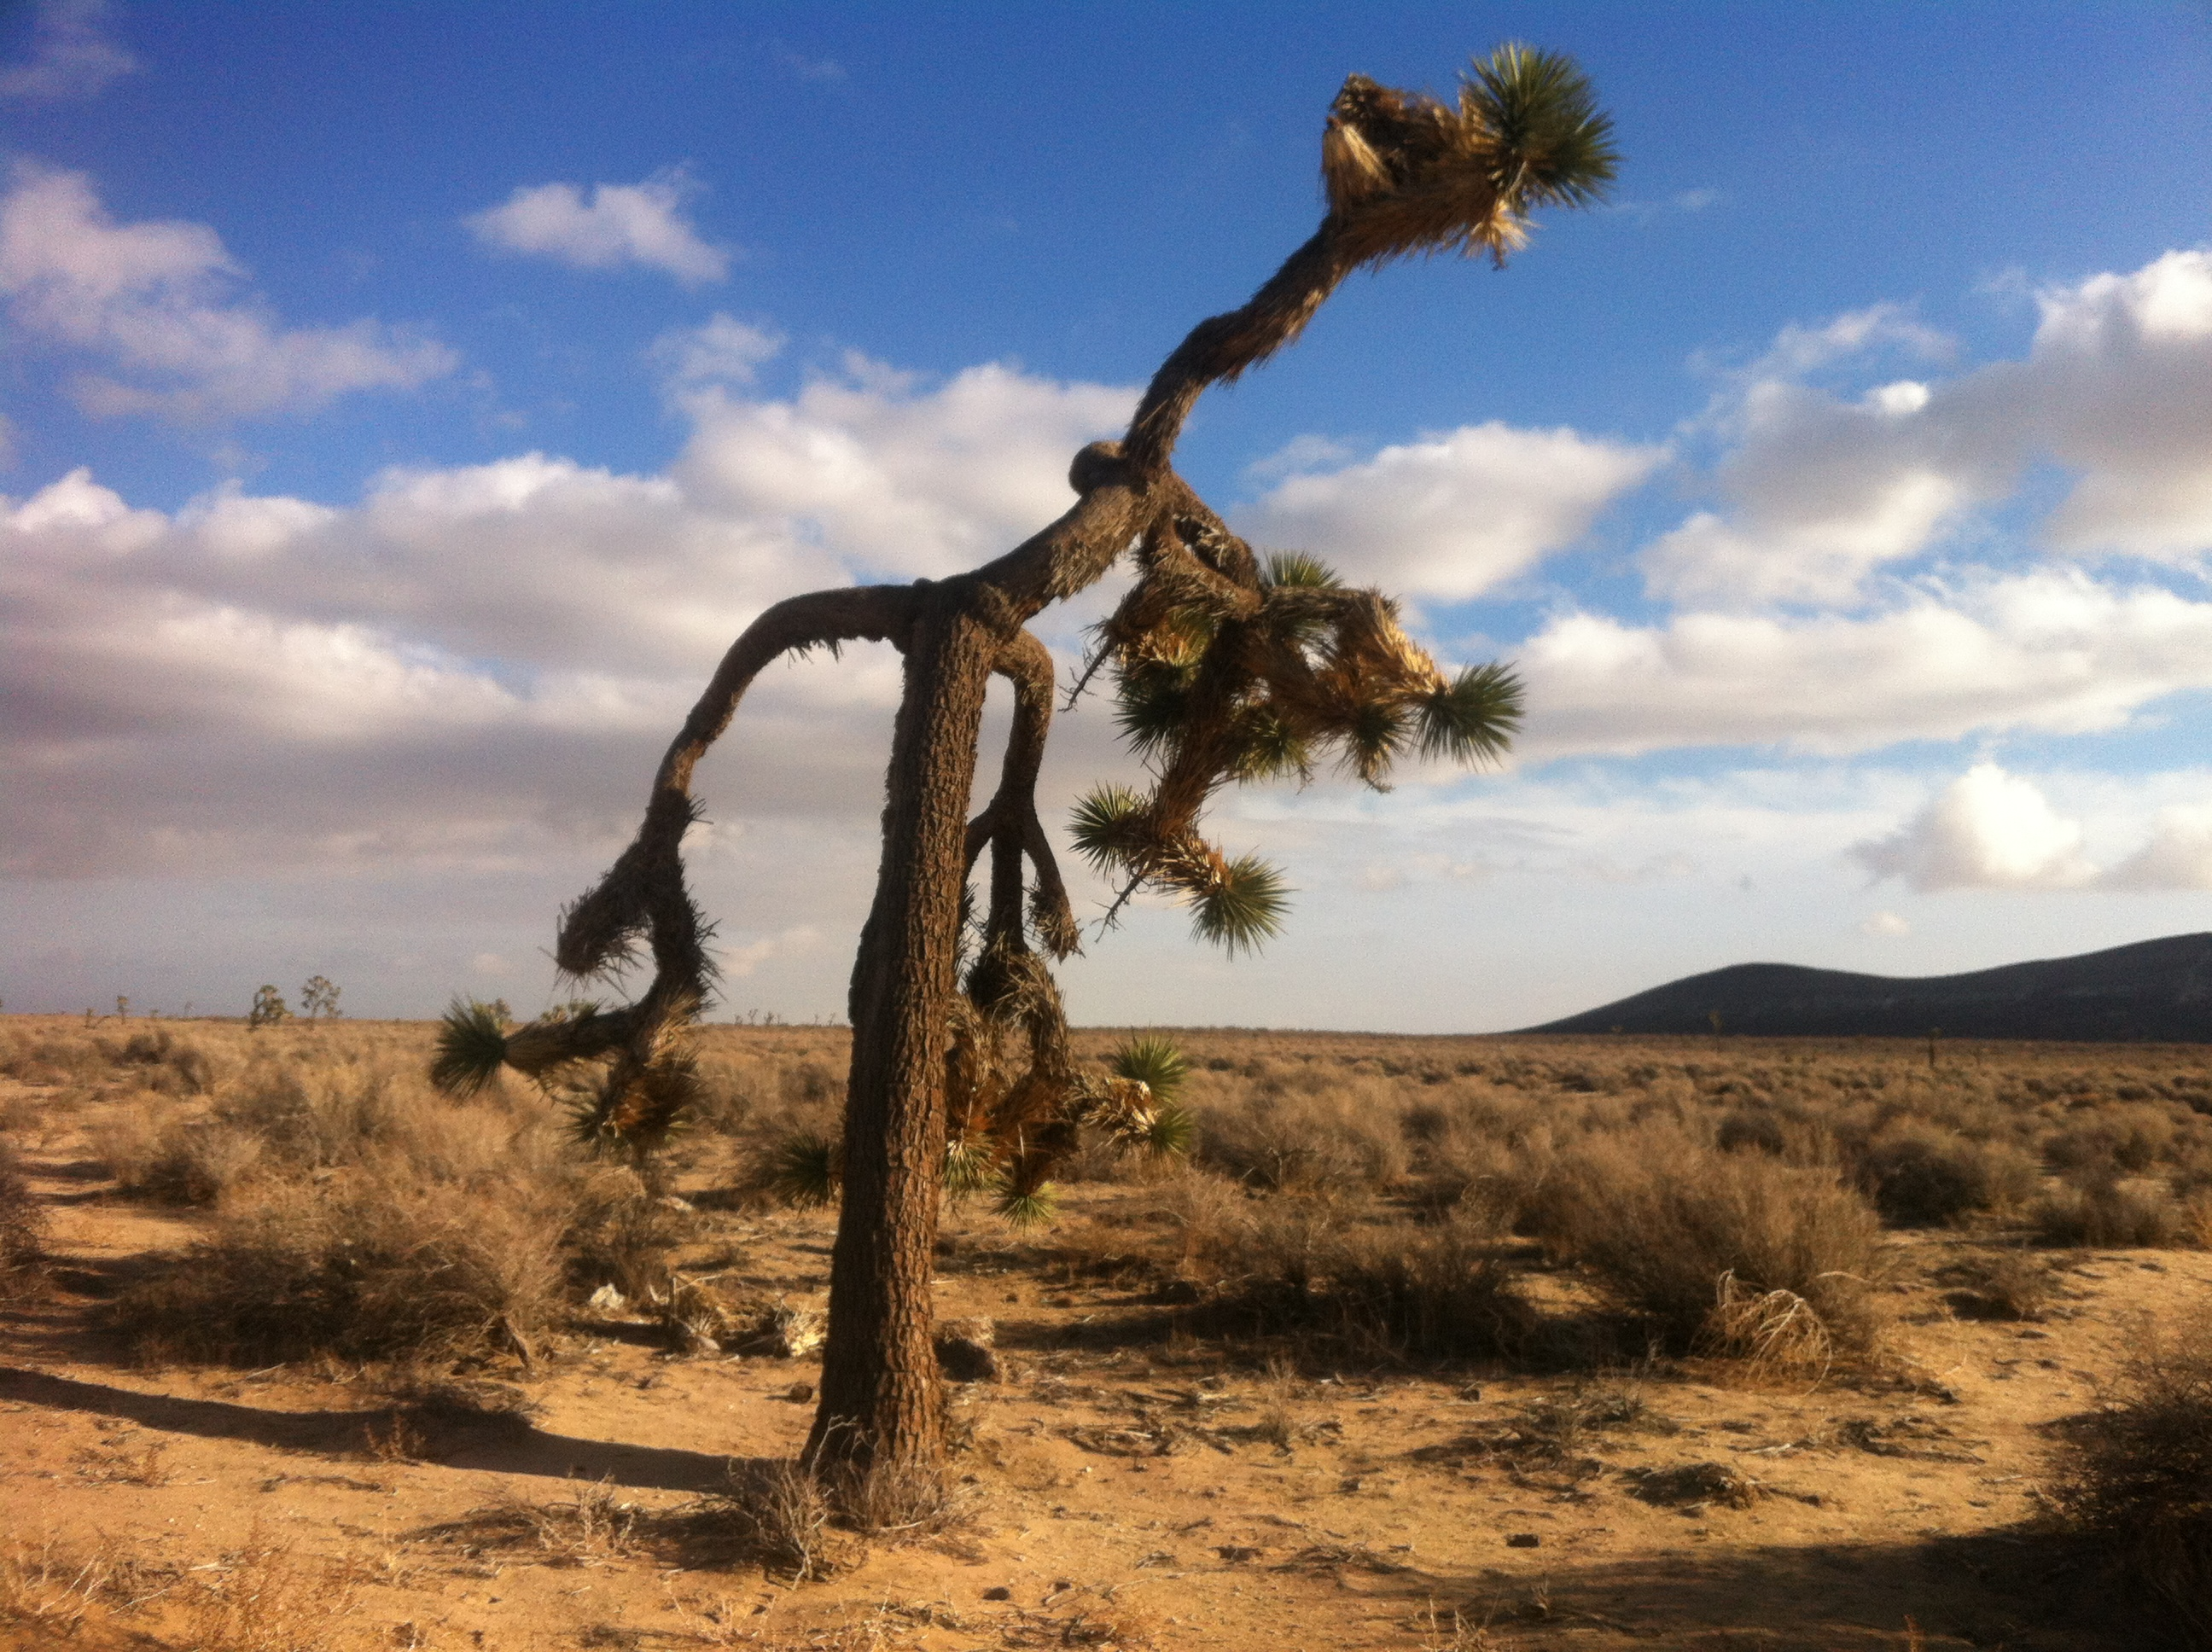 UltimateGraveyard Mojave Desert Filming & Photography Location - Joshua Trees